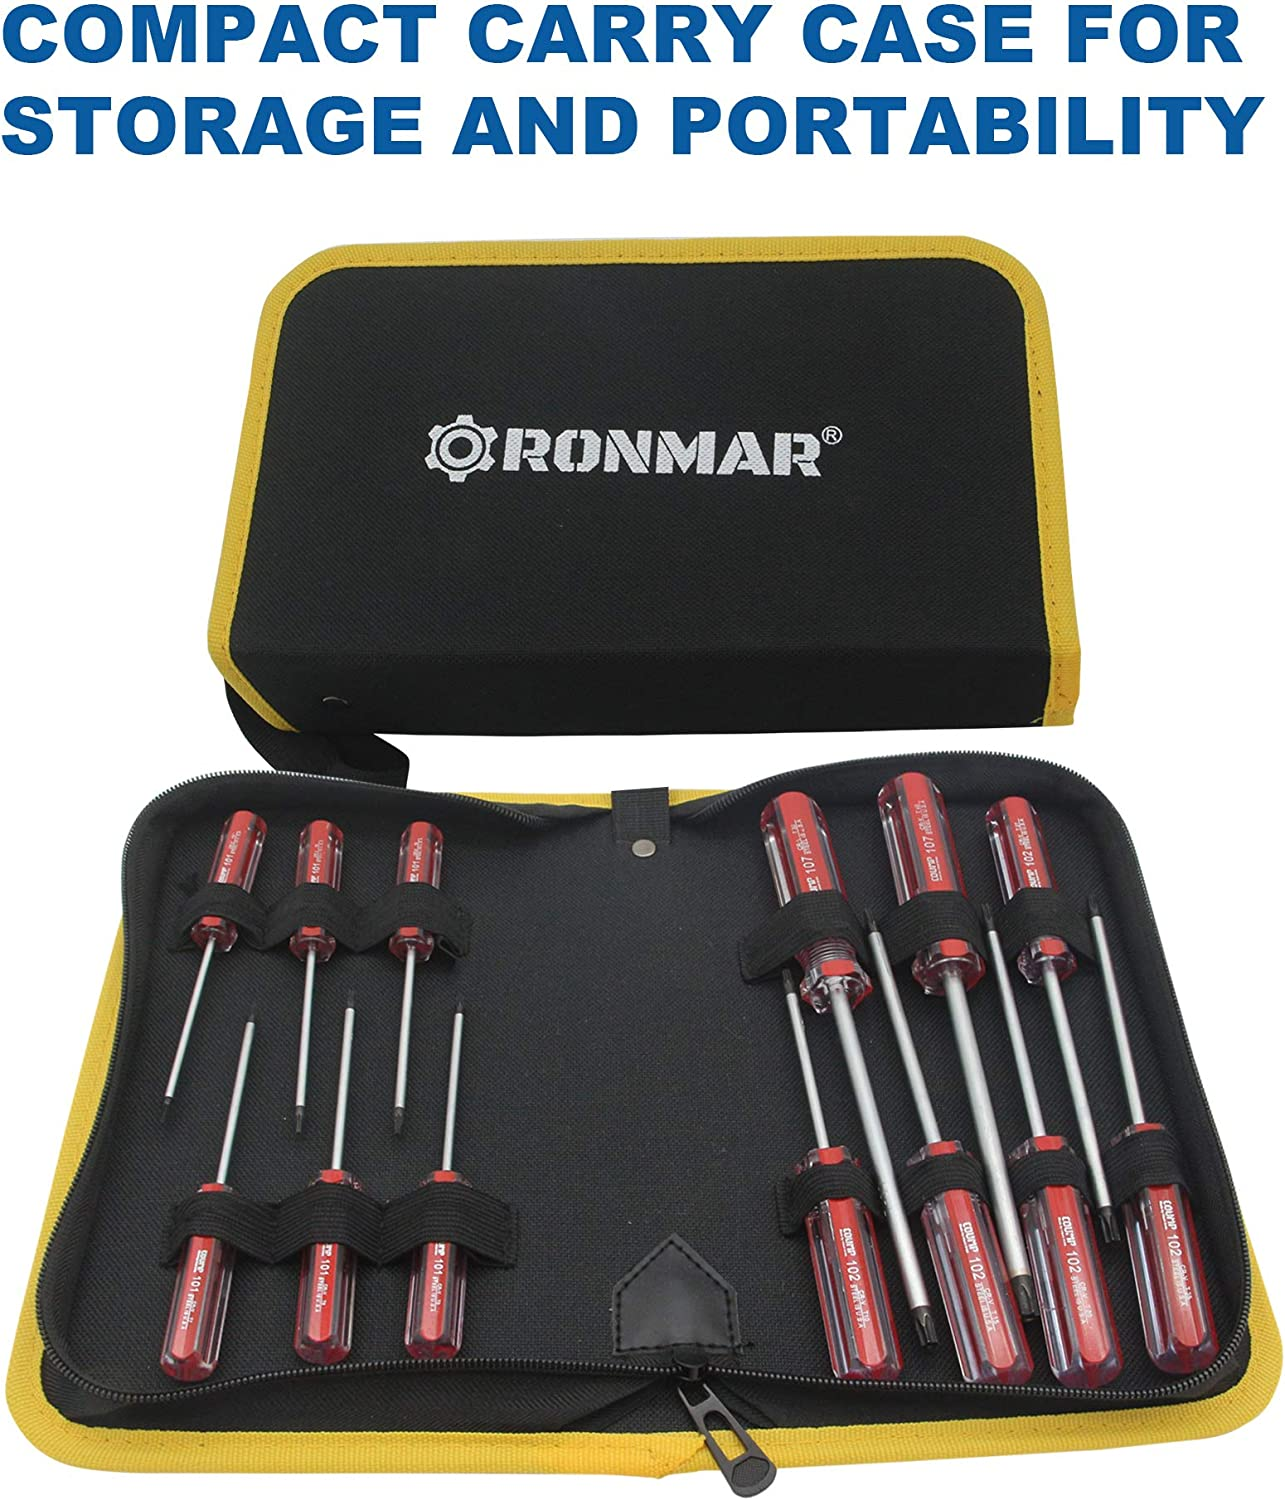 RONMAR 13-Piece Magnetic Torx Screwdrivers Set Security Tamper Proof T4、T5、T6、T7、T8、T9、T10、T15、T20、T25、T27、T30、T40